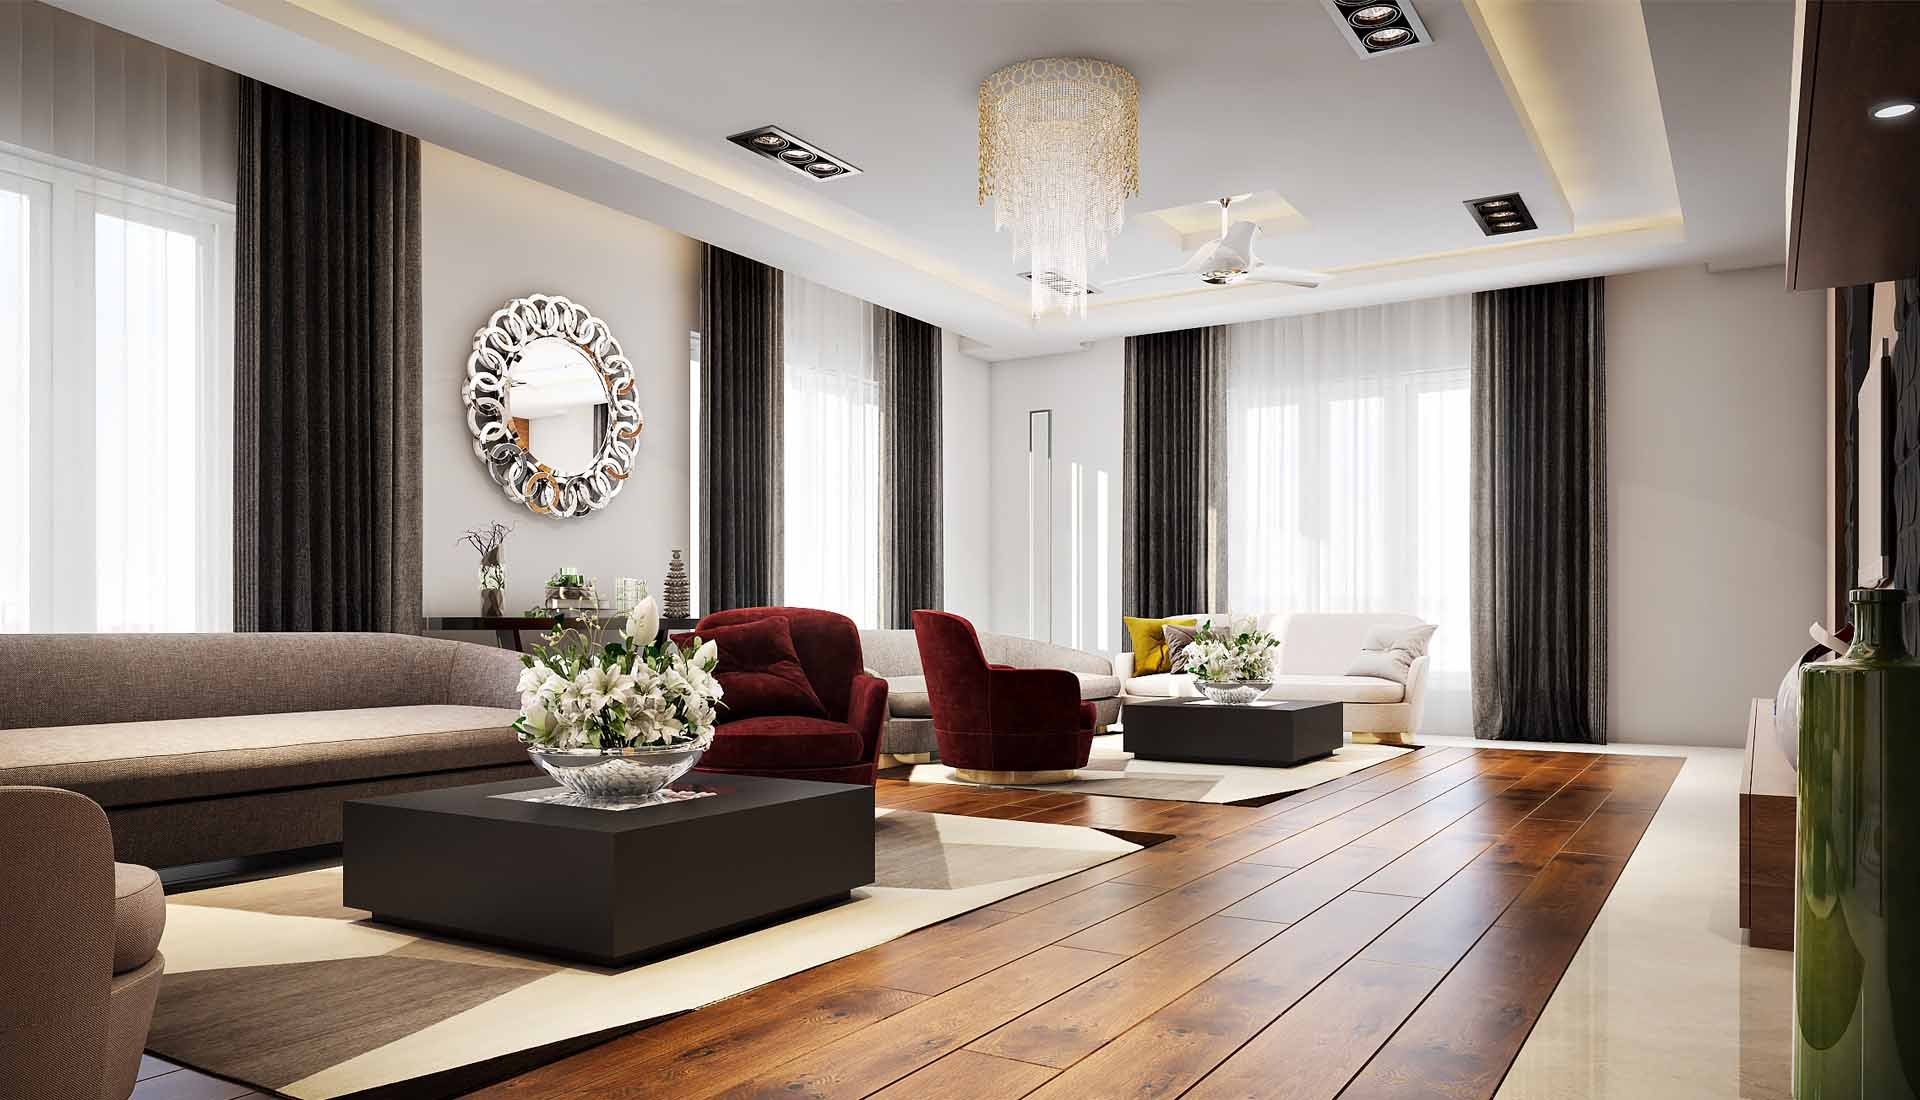 Best Home Interior Designers In Kochi, Ernakulam, Kerala